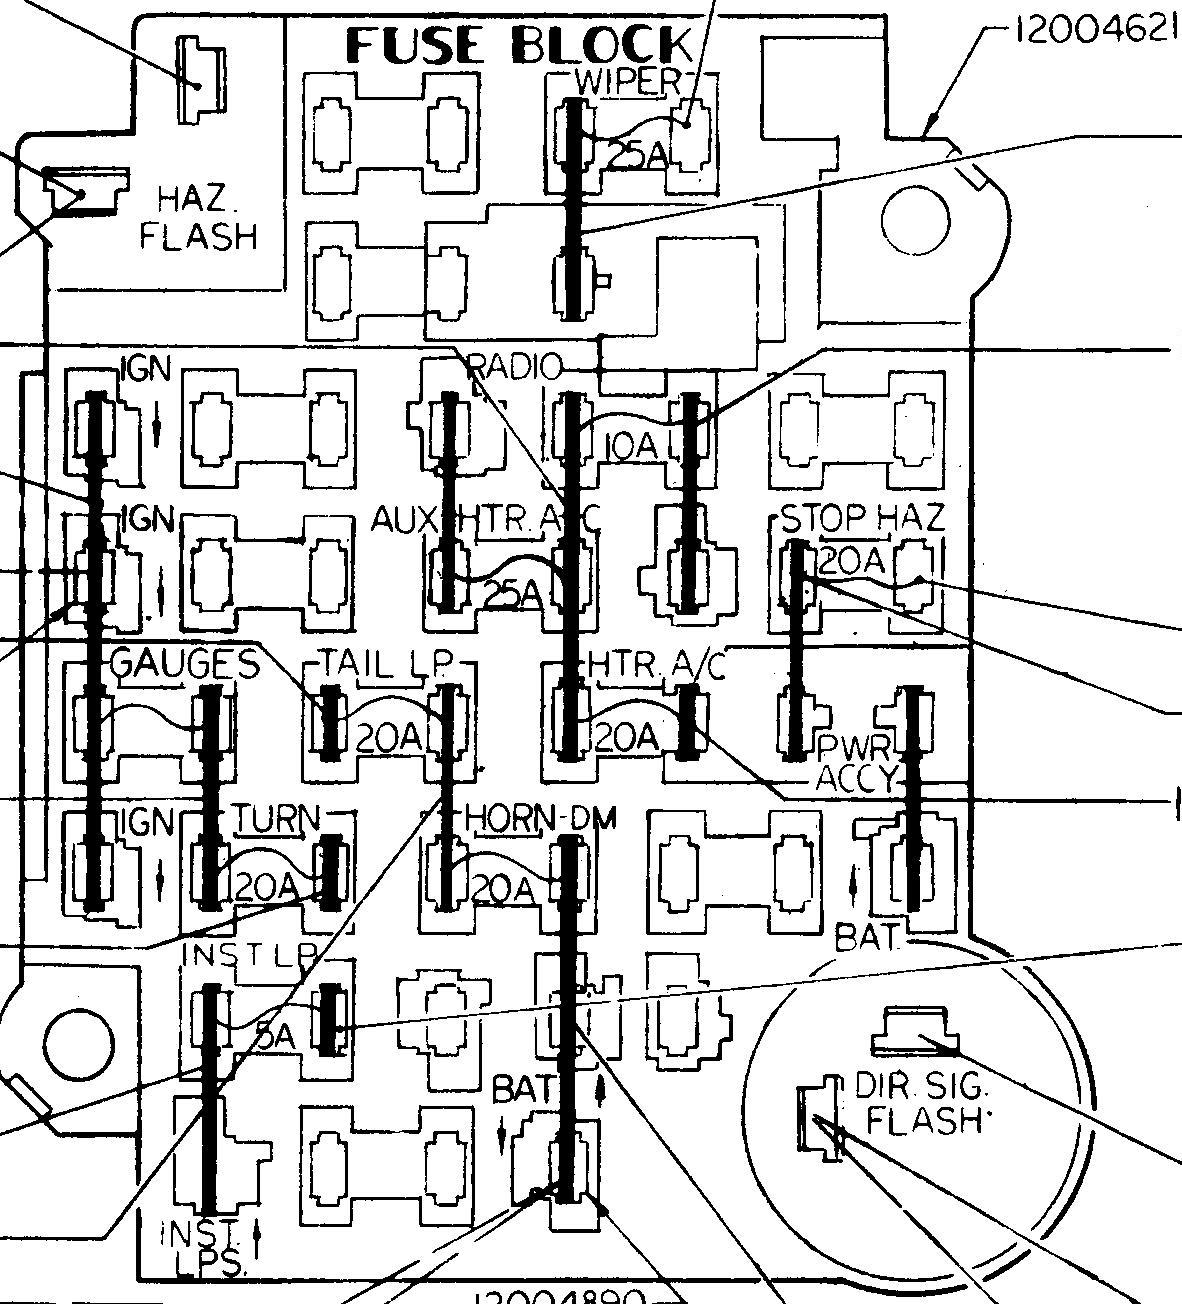 hight resolution of 1979 chevy truck fuse box diagram wiring diagrams electrical chevy truck fuse box diagram 1979 chevy